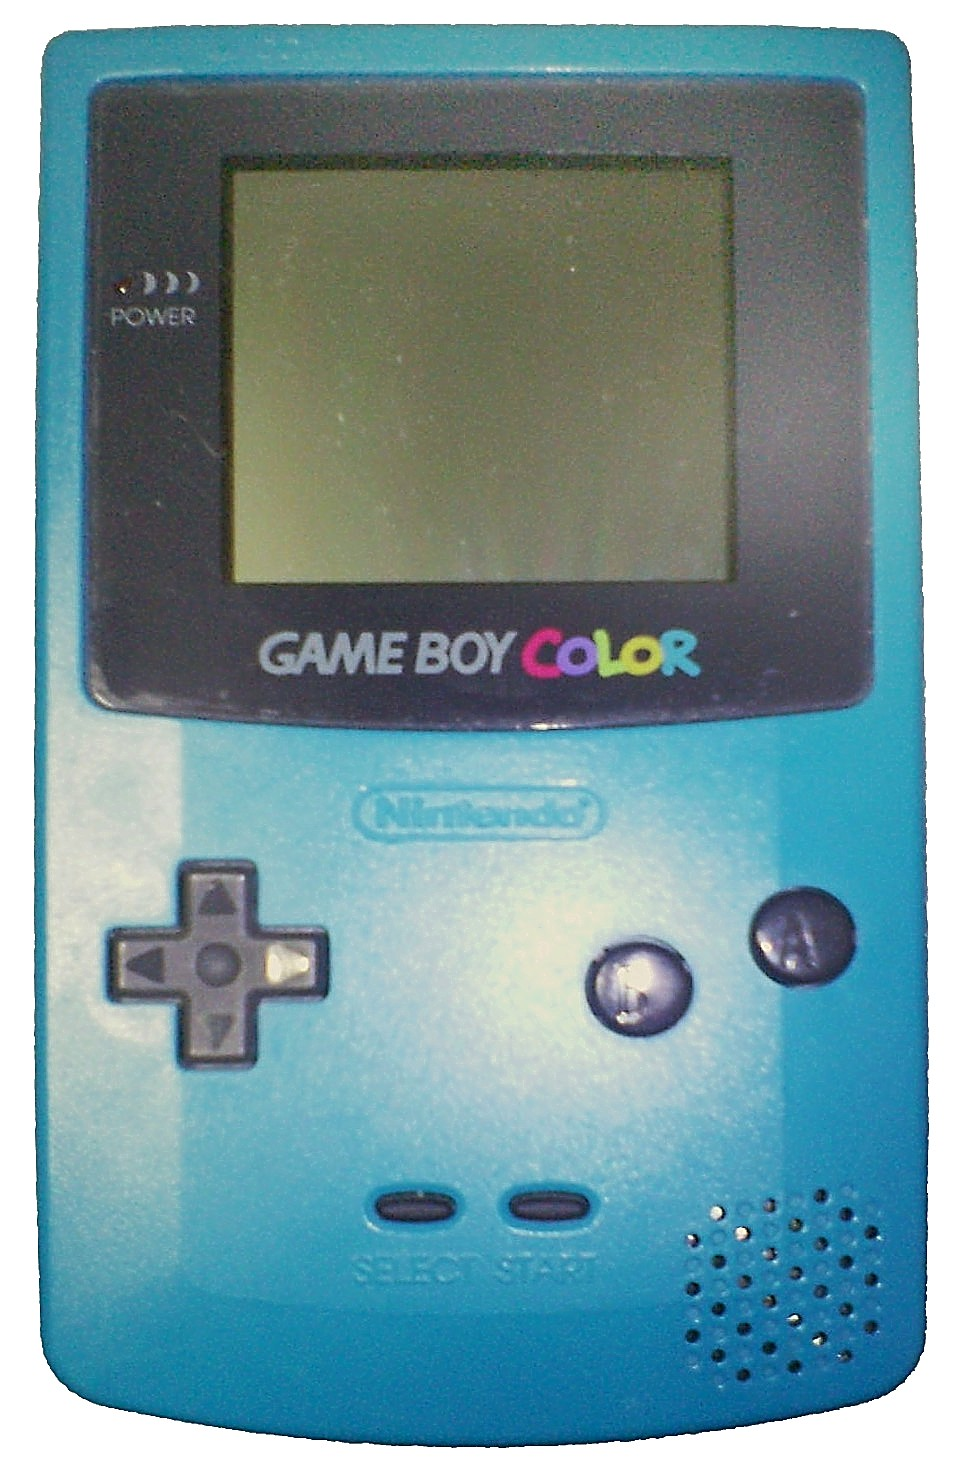 http://fr.academic.ru/pictures/frwiki/71/Game_Boy_Color.jpg